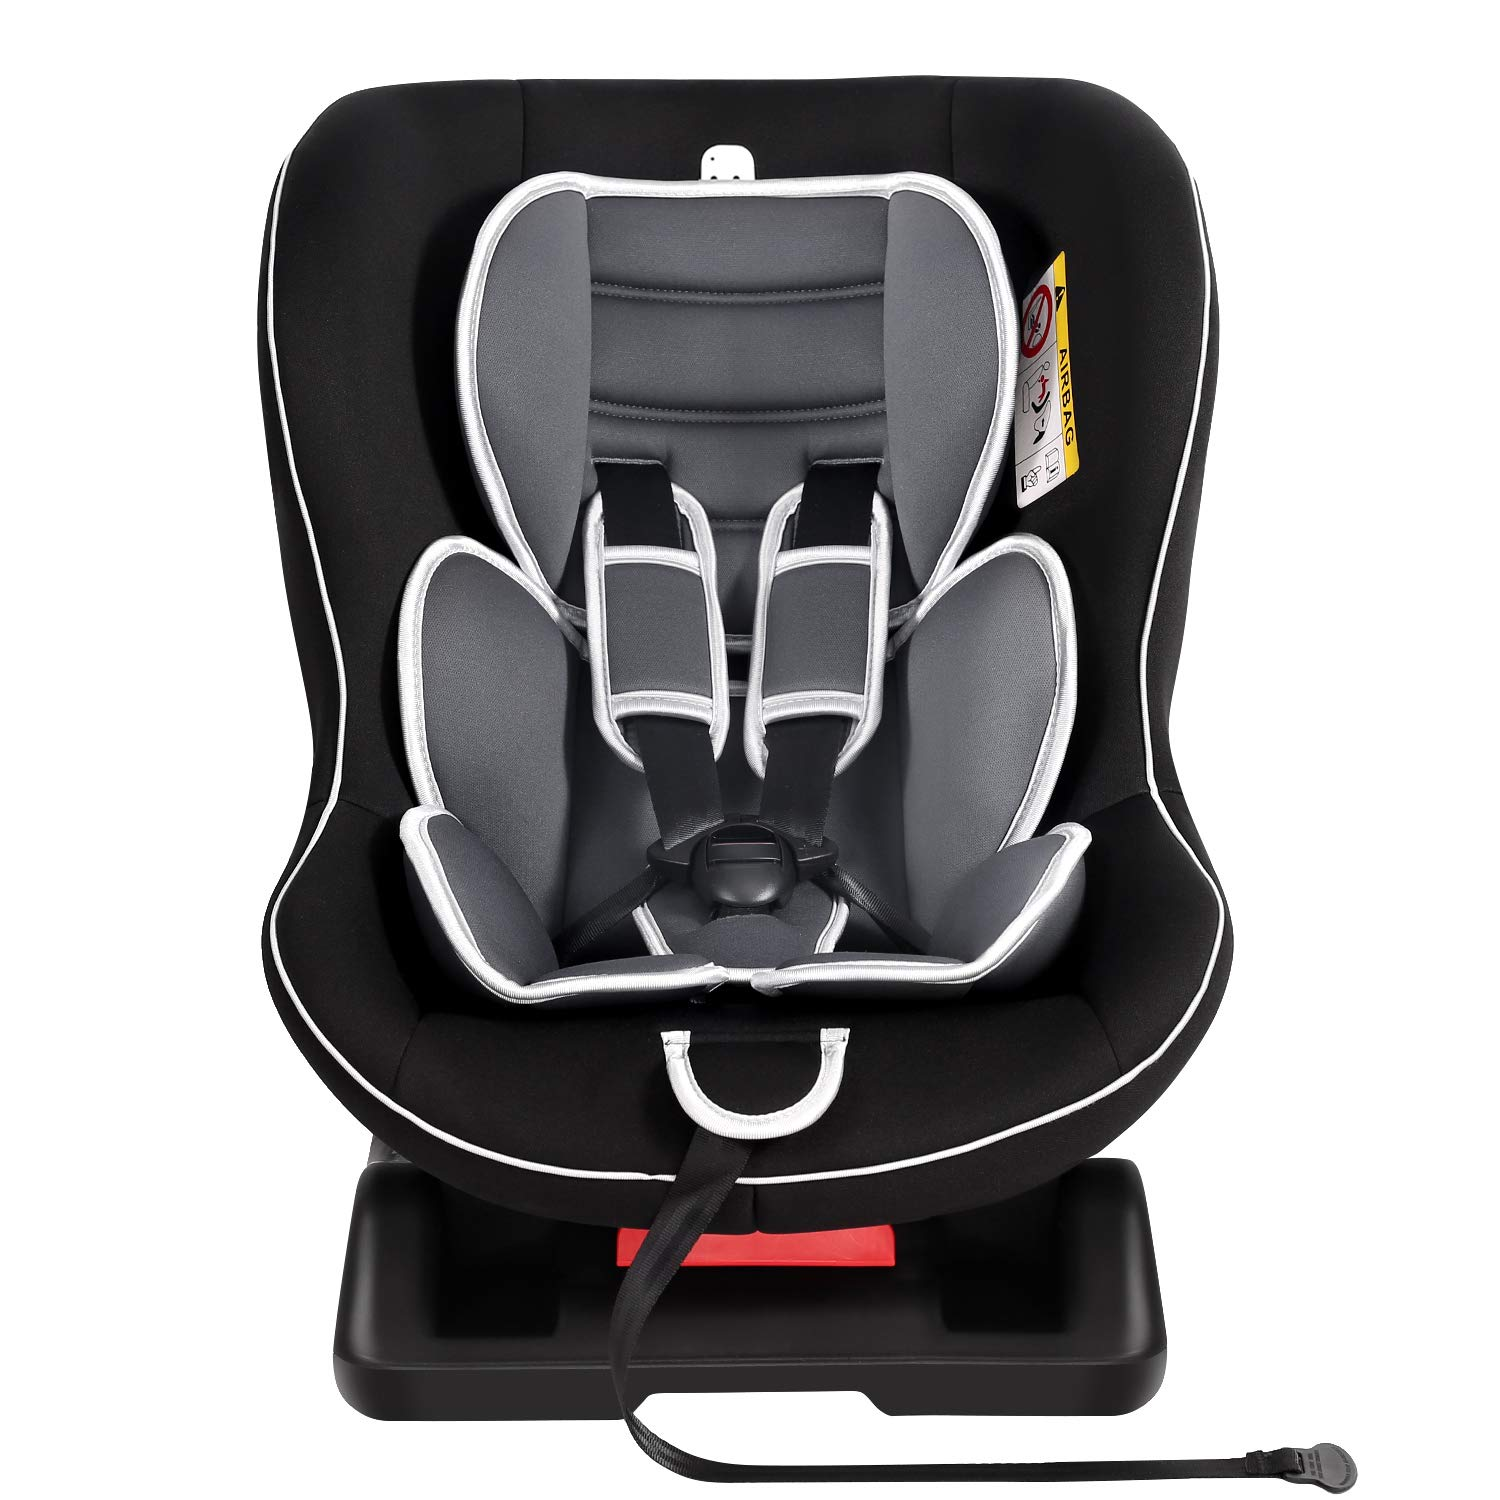 Reclinable Swiveling with Booster Seat ⭐ Rotating Baby Car Seat 0-18kg Maximum Safety for your Child Groups 0+//1 ECE R44//4 Compliant - 0+ 1 Car Seat 360/° Baby and Child Car Seats Isofix